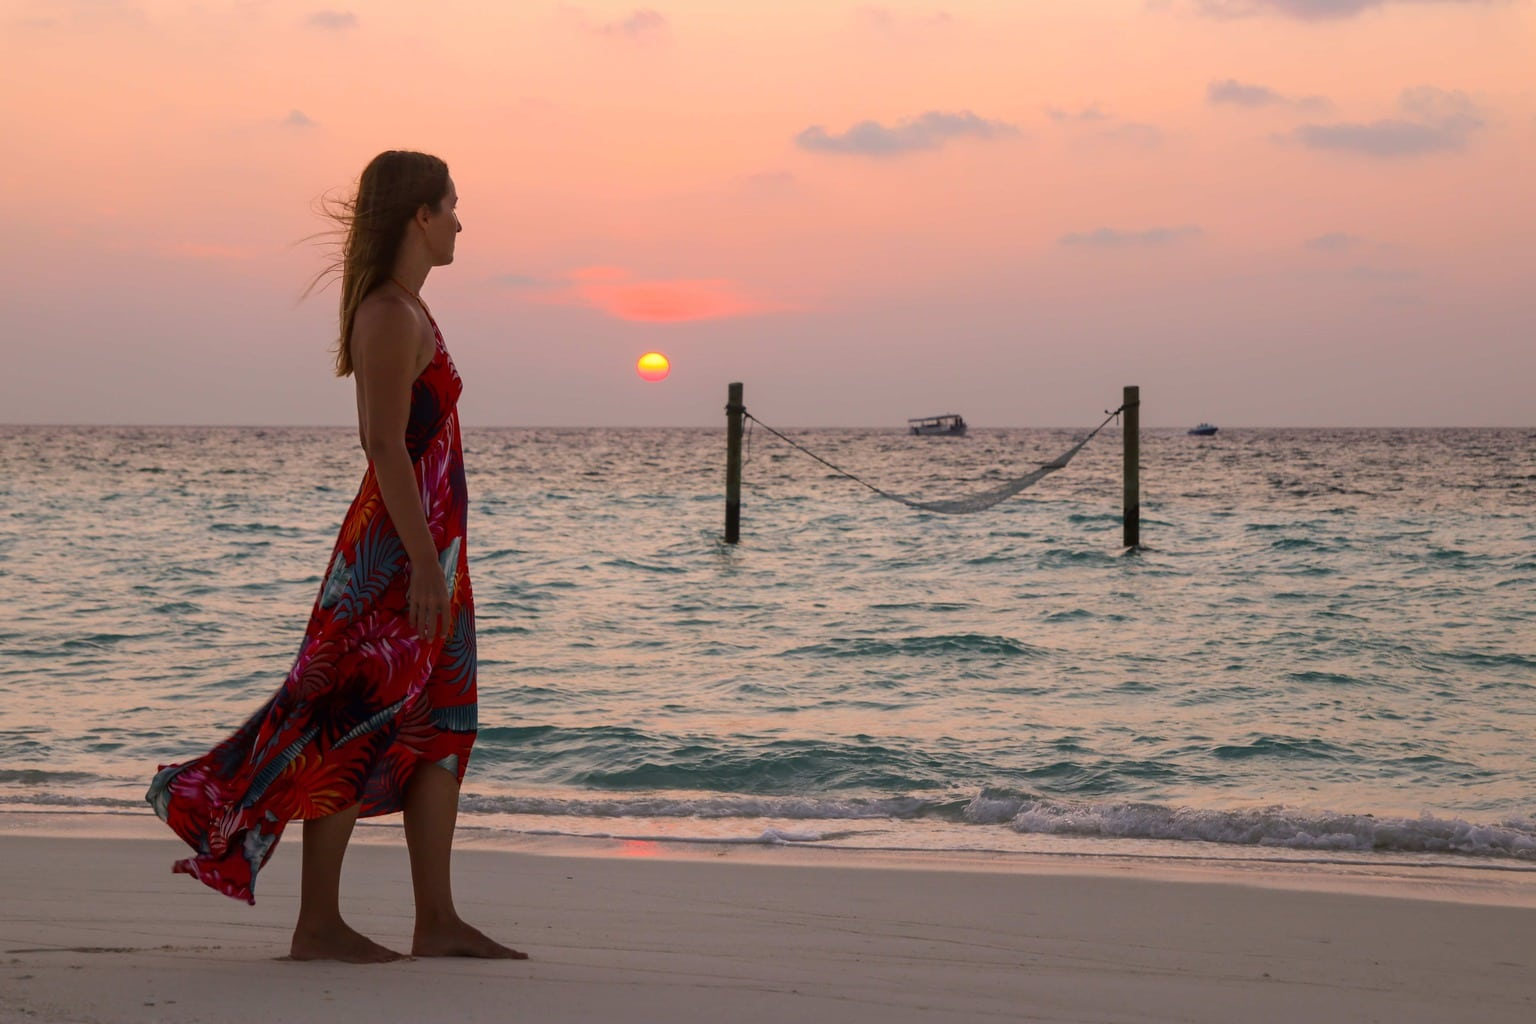 Sunset at Soneva Fushi